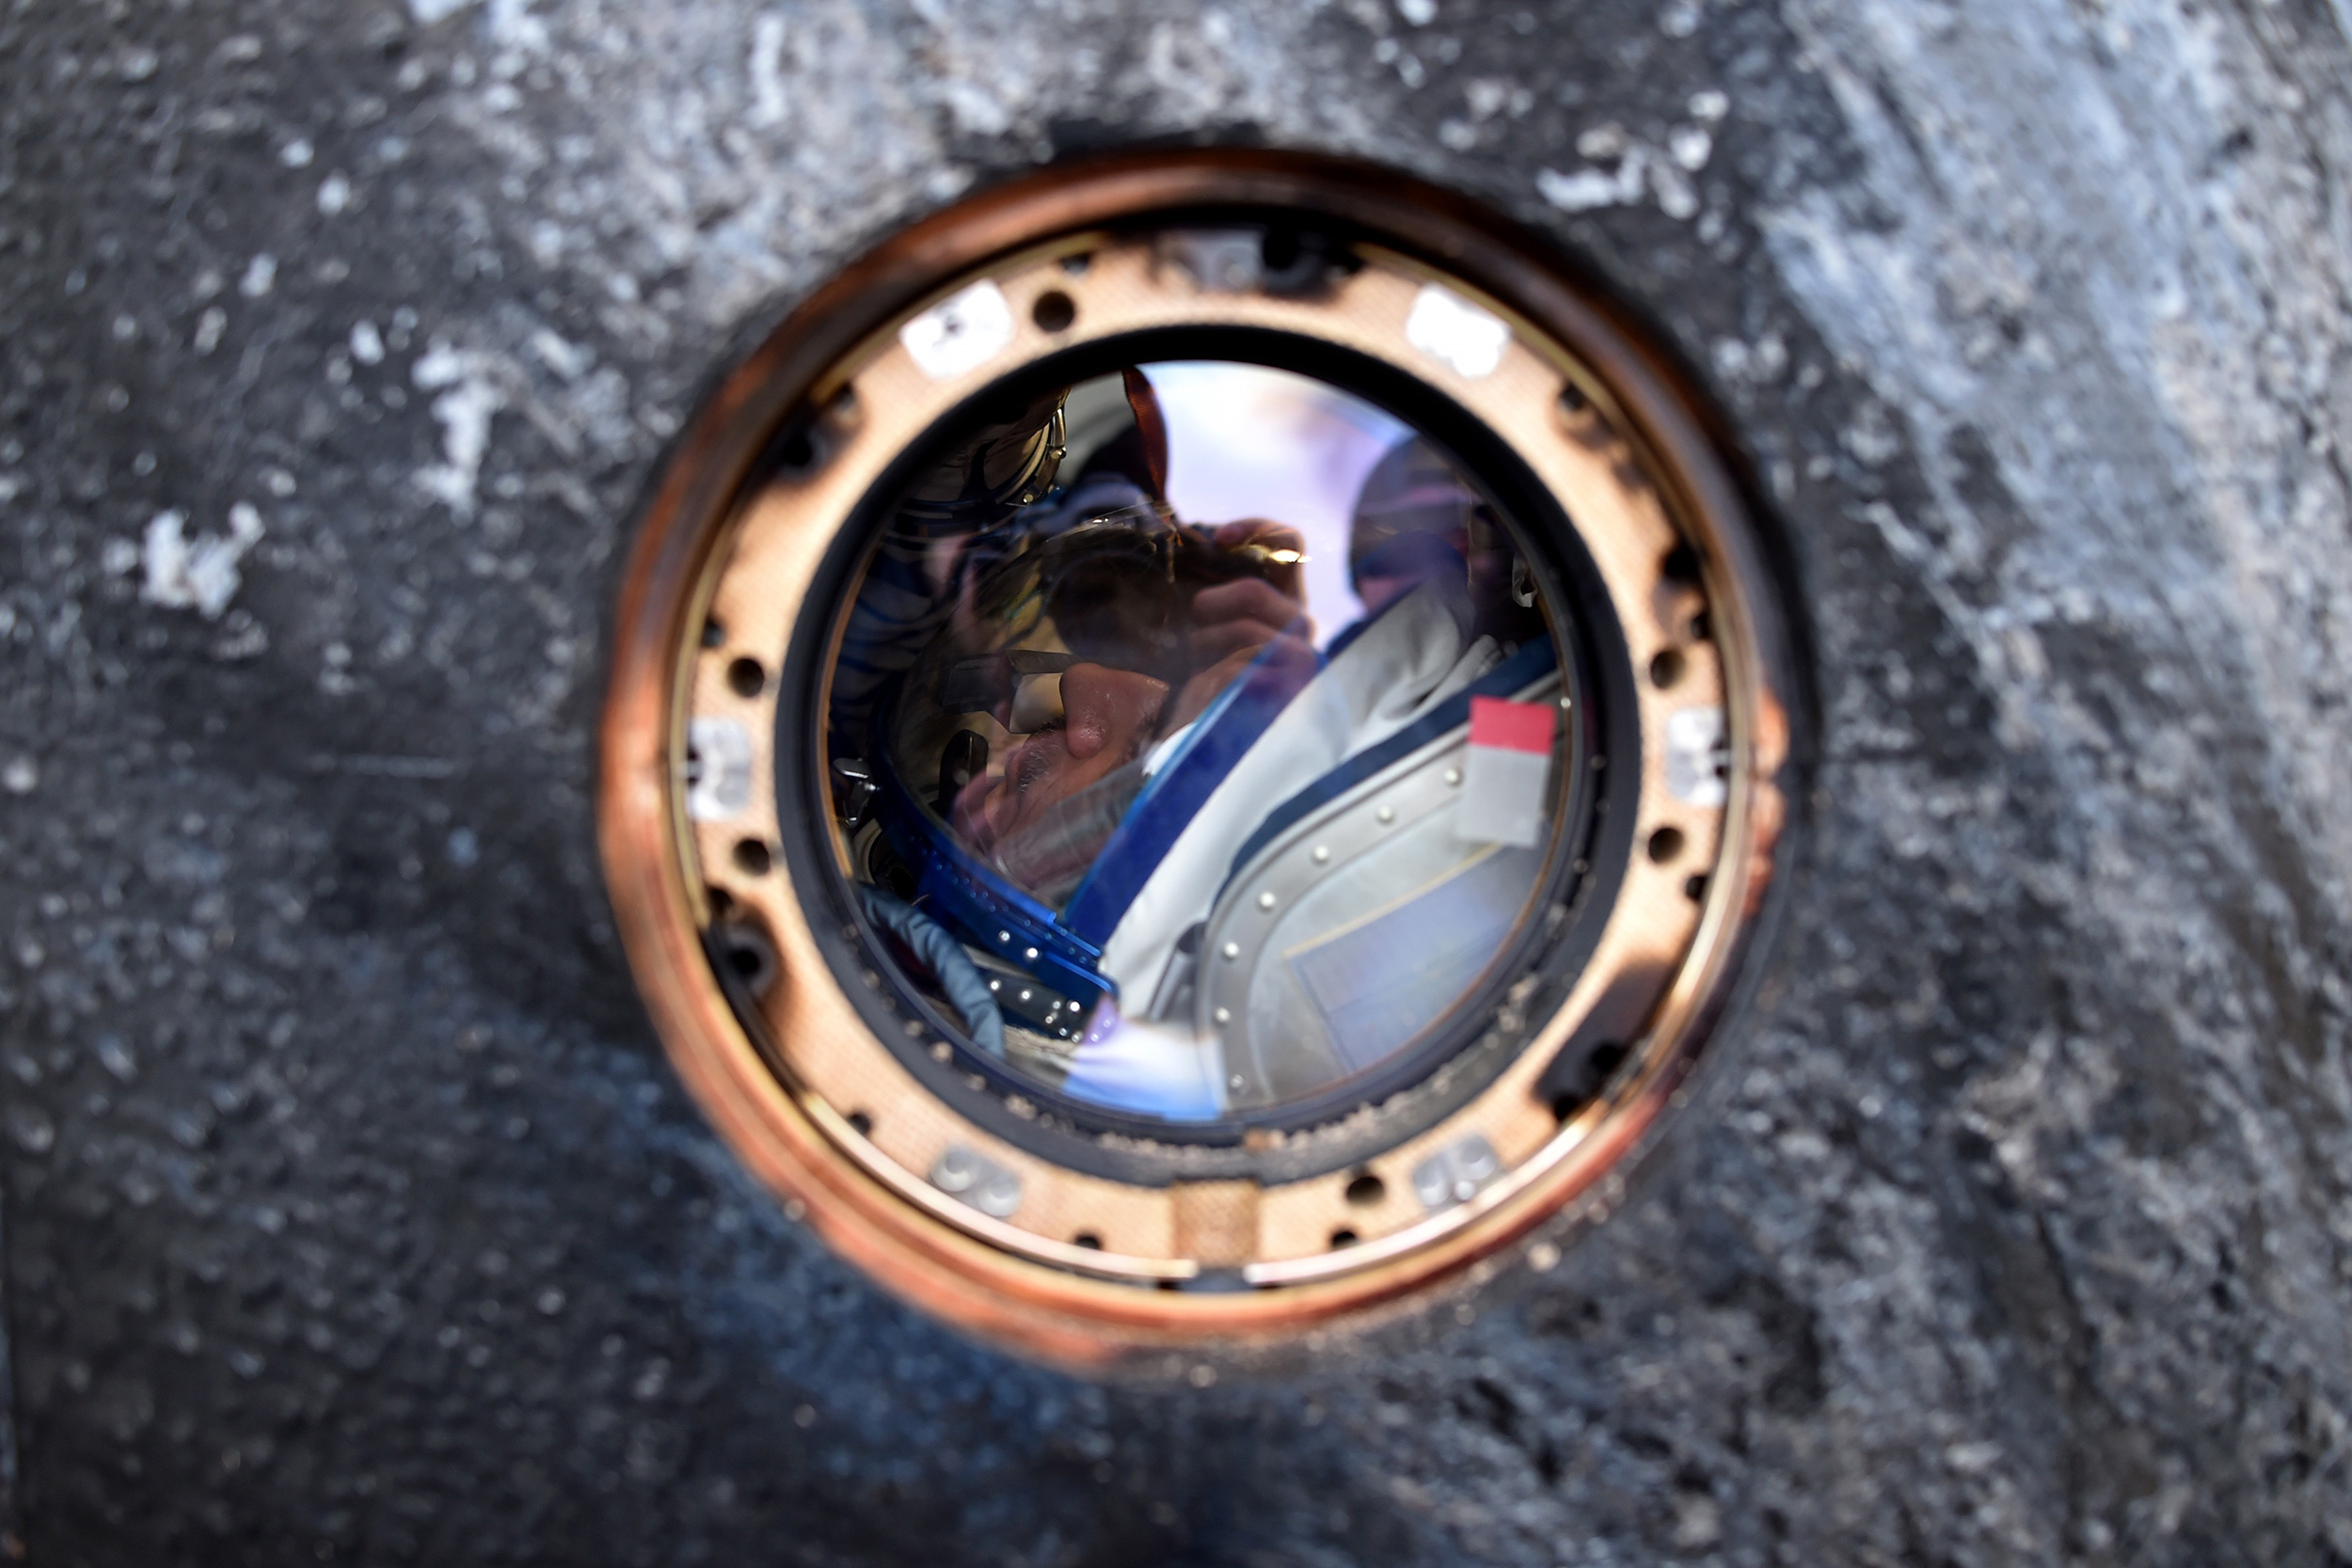 Mikhail Kornienko of Russia is seen inside the Soyuz TMA-18M space capsule after landing in Kazakhstan, on March 2, 2016.